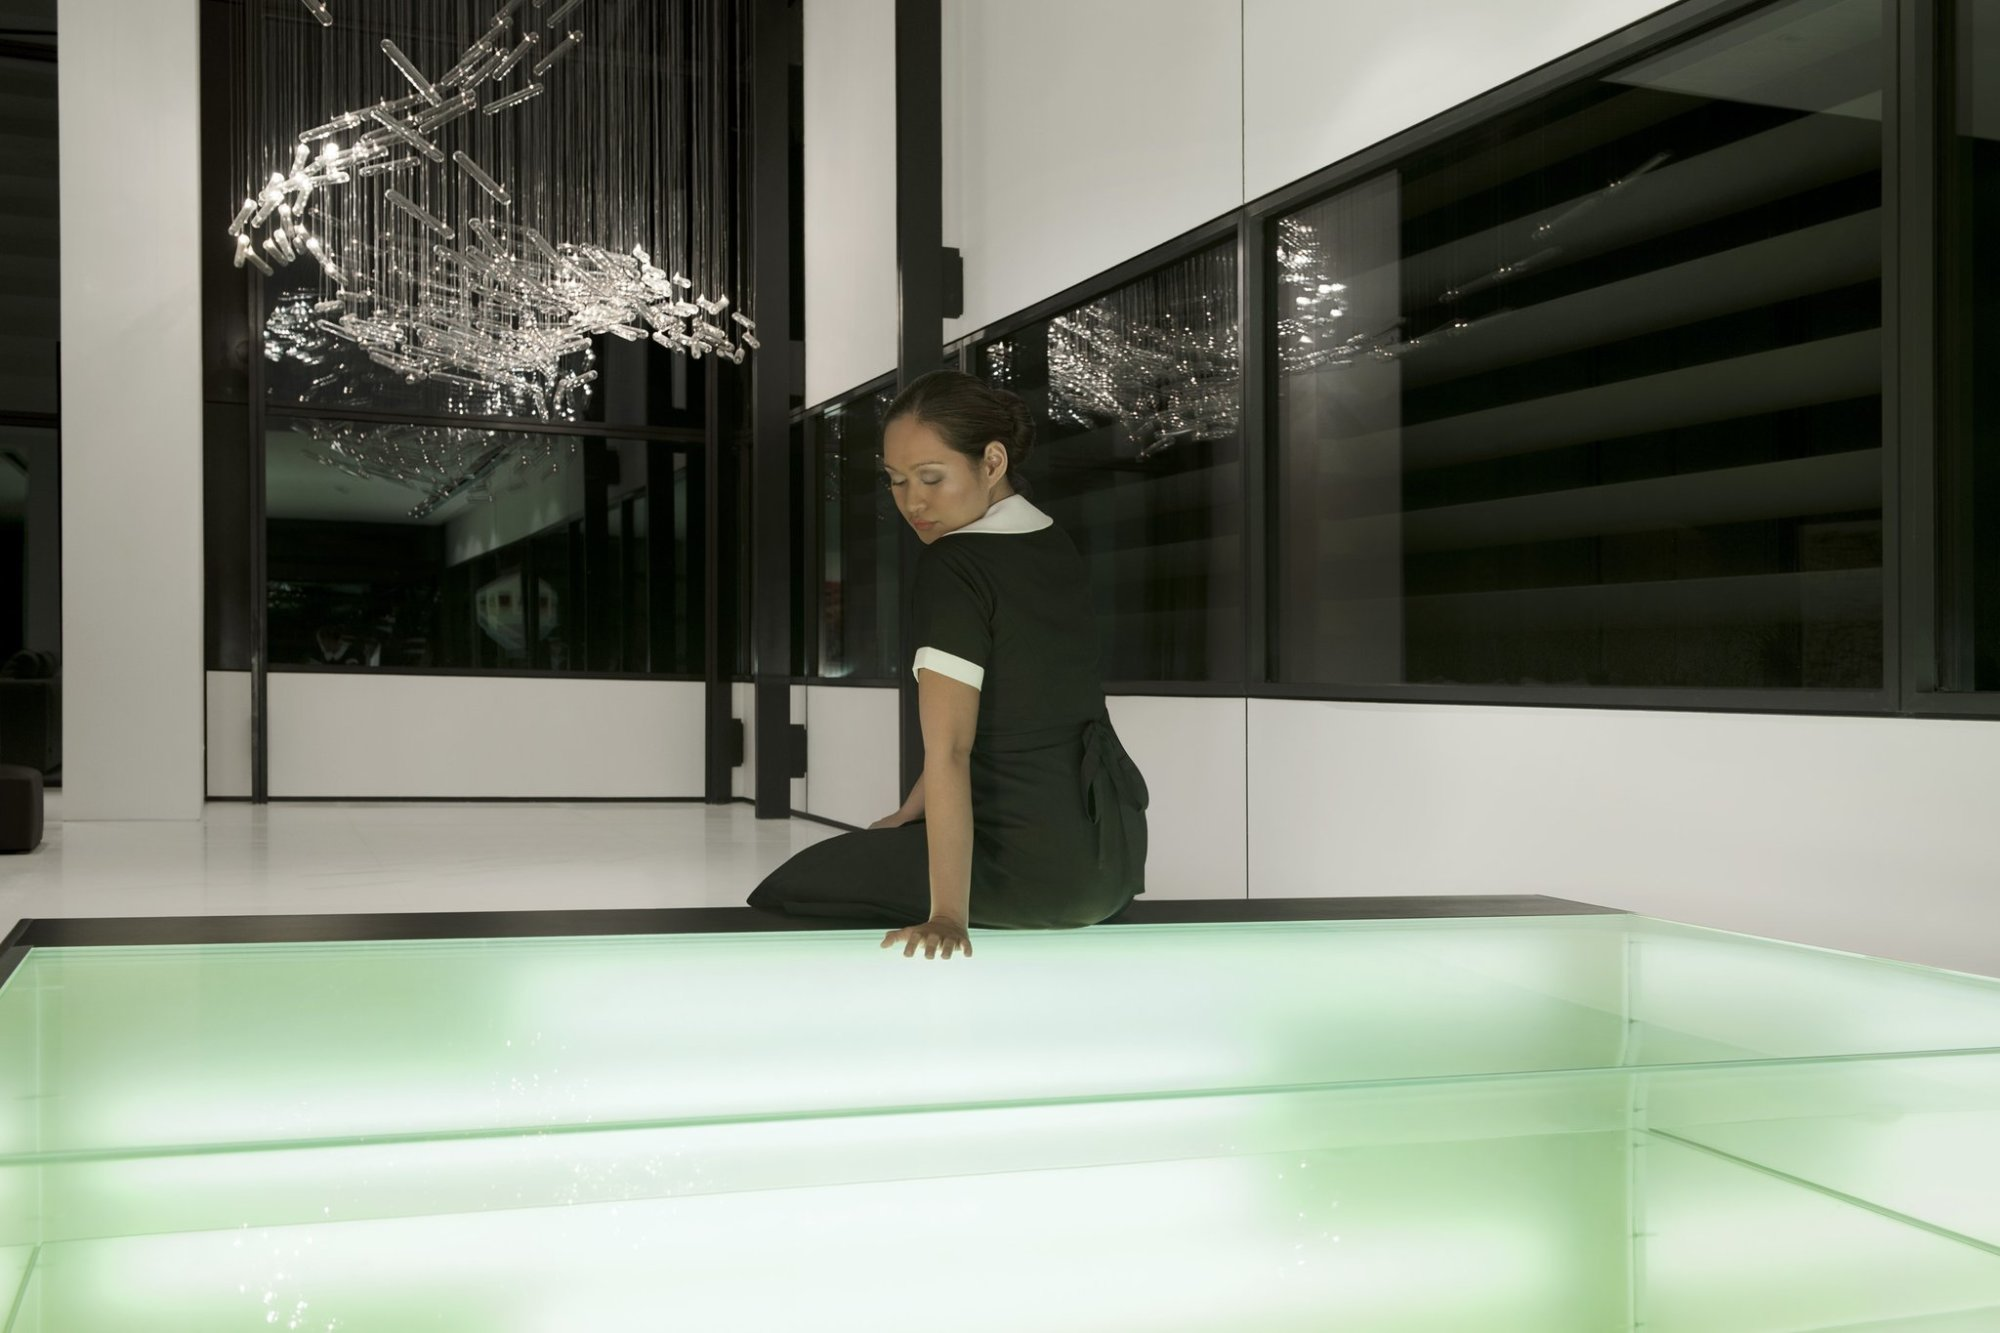 Isaac Julien, THE MAID / REFLECTIONS (Playtime), 2014